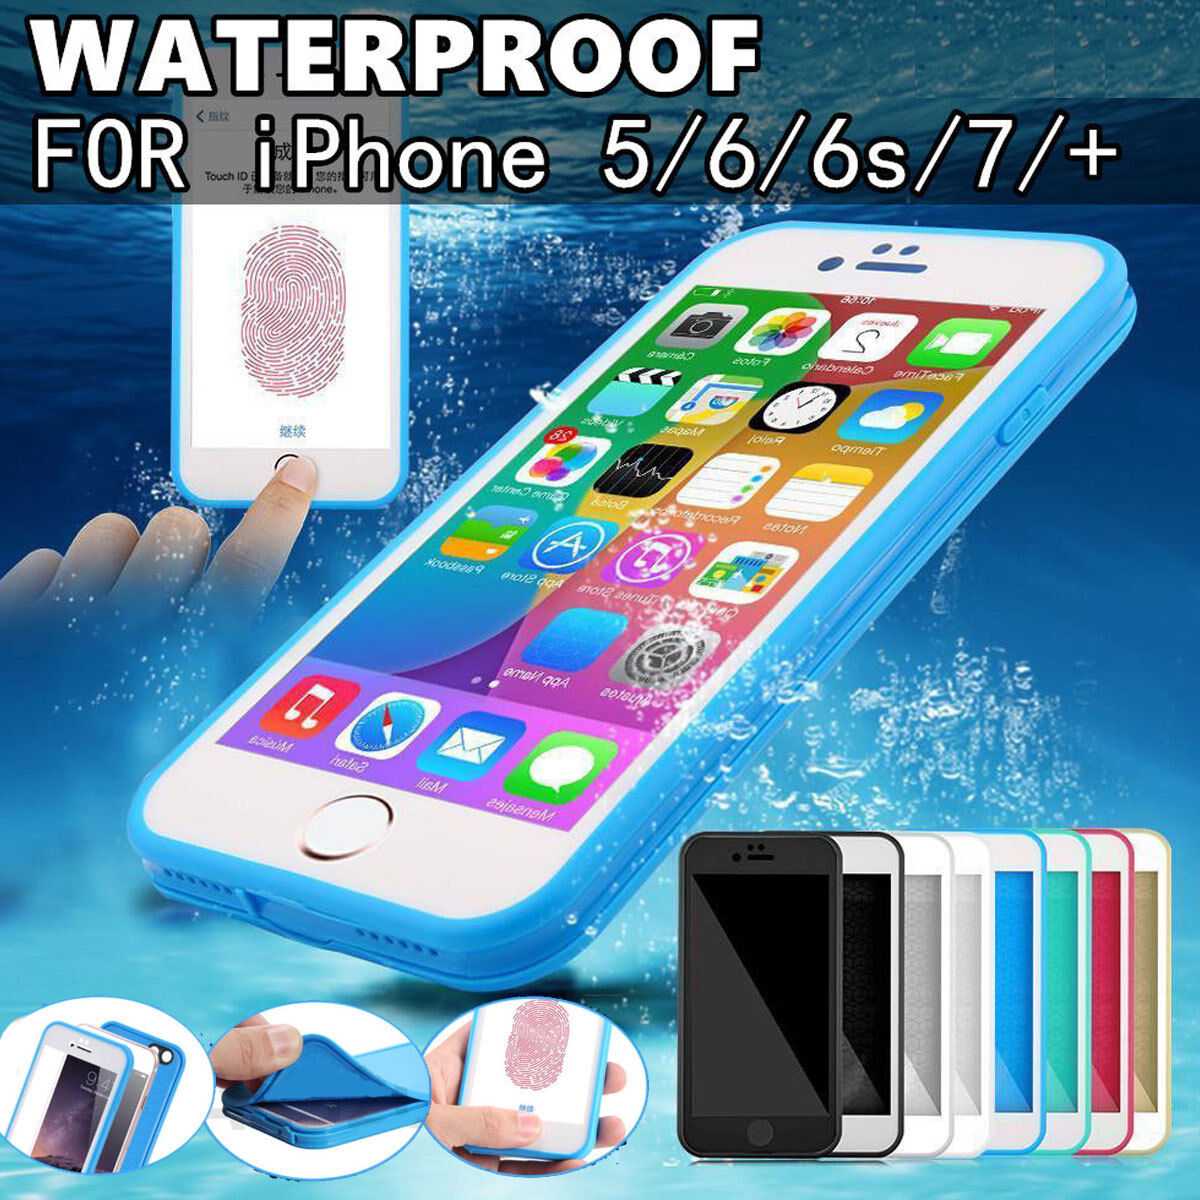 waterproof-shock-proof-hybrid-rubber-tpu-case-cover-for-iphone-6s-6-plus-7-x-se